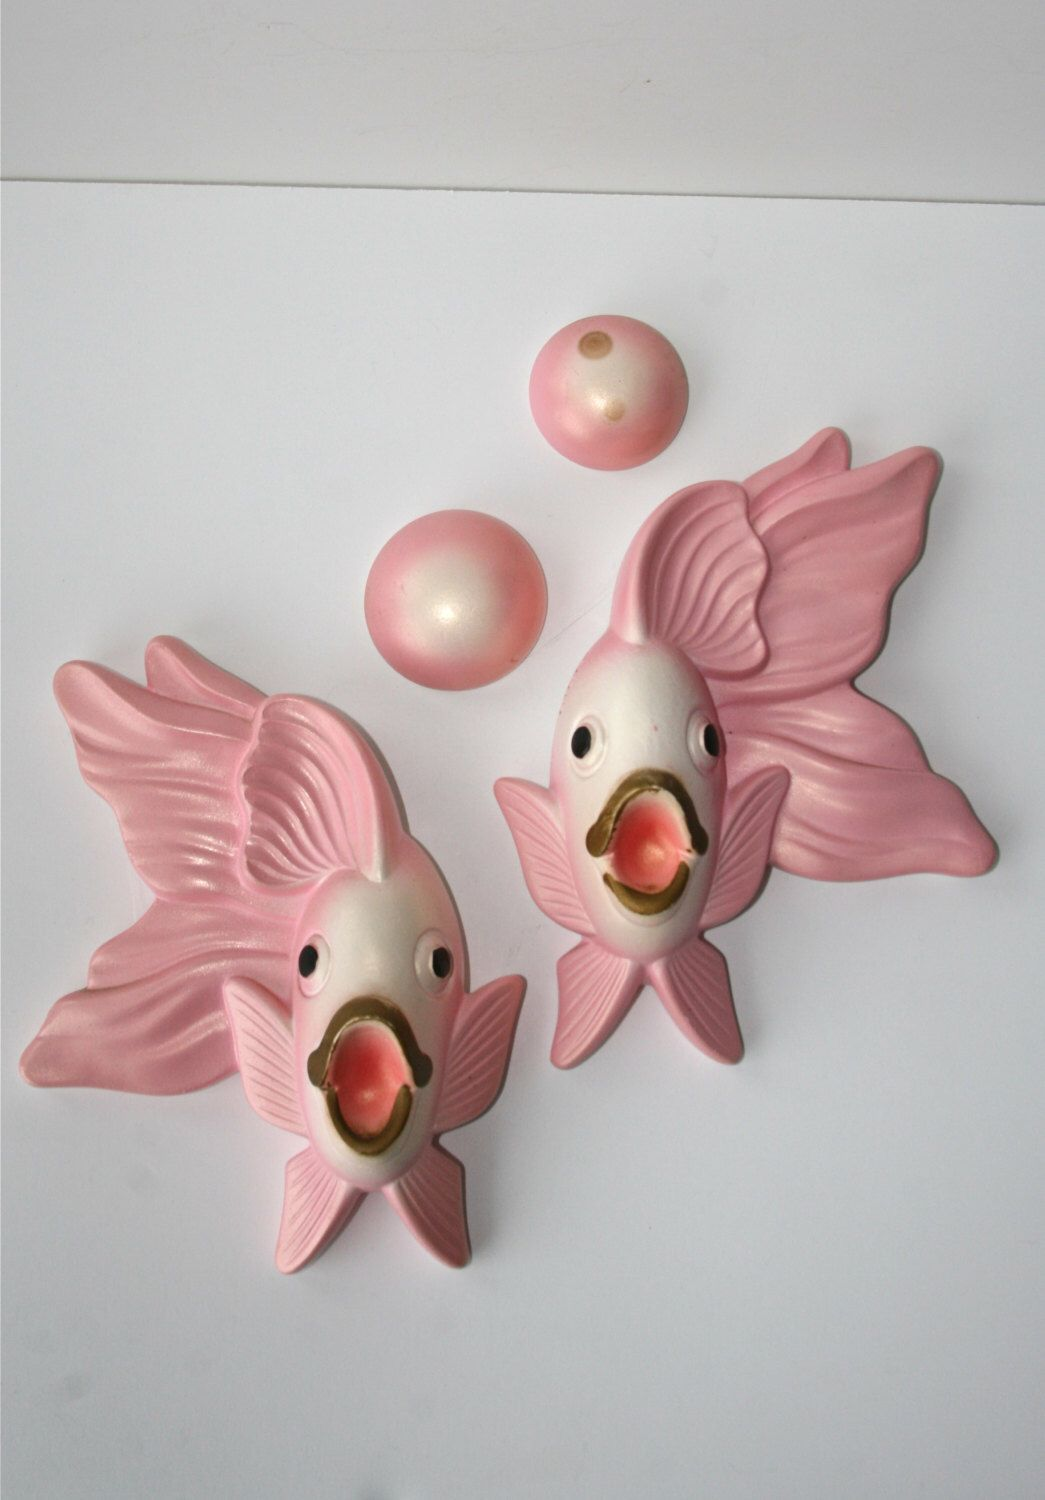 Bathroom Fish Decor Vintage Pink Angel Fish Bathroom Decor Plaster Plaques Fish